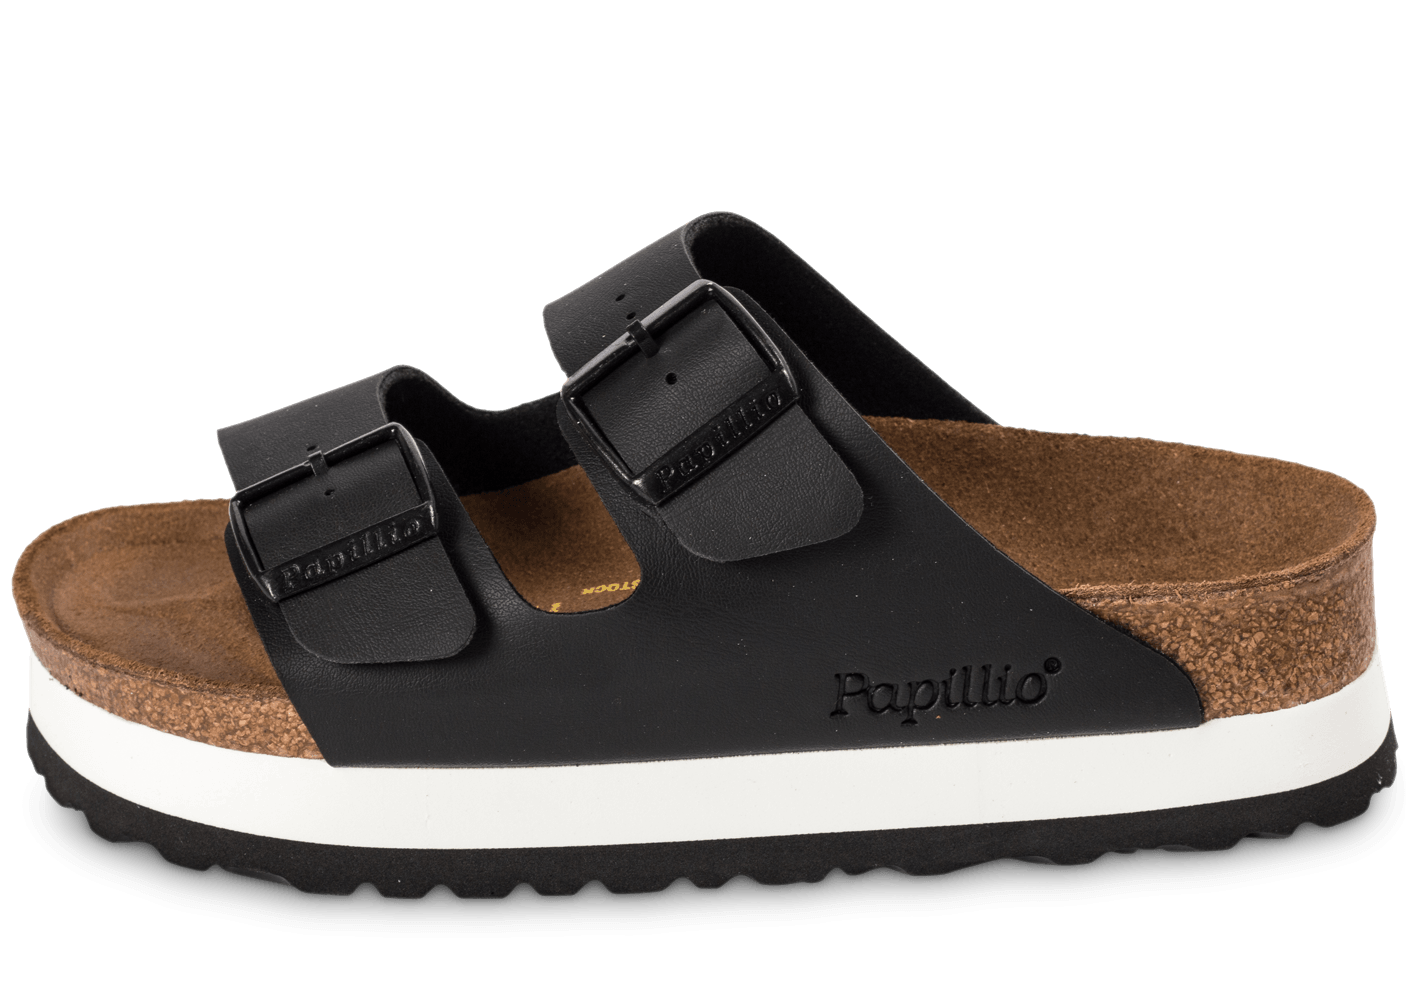 birkenstock arizona compens e noire chaussures femme. Black Bedroom Furniture Sets. Home Design Ideas